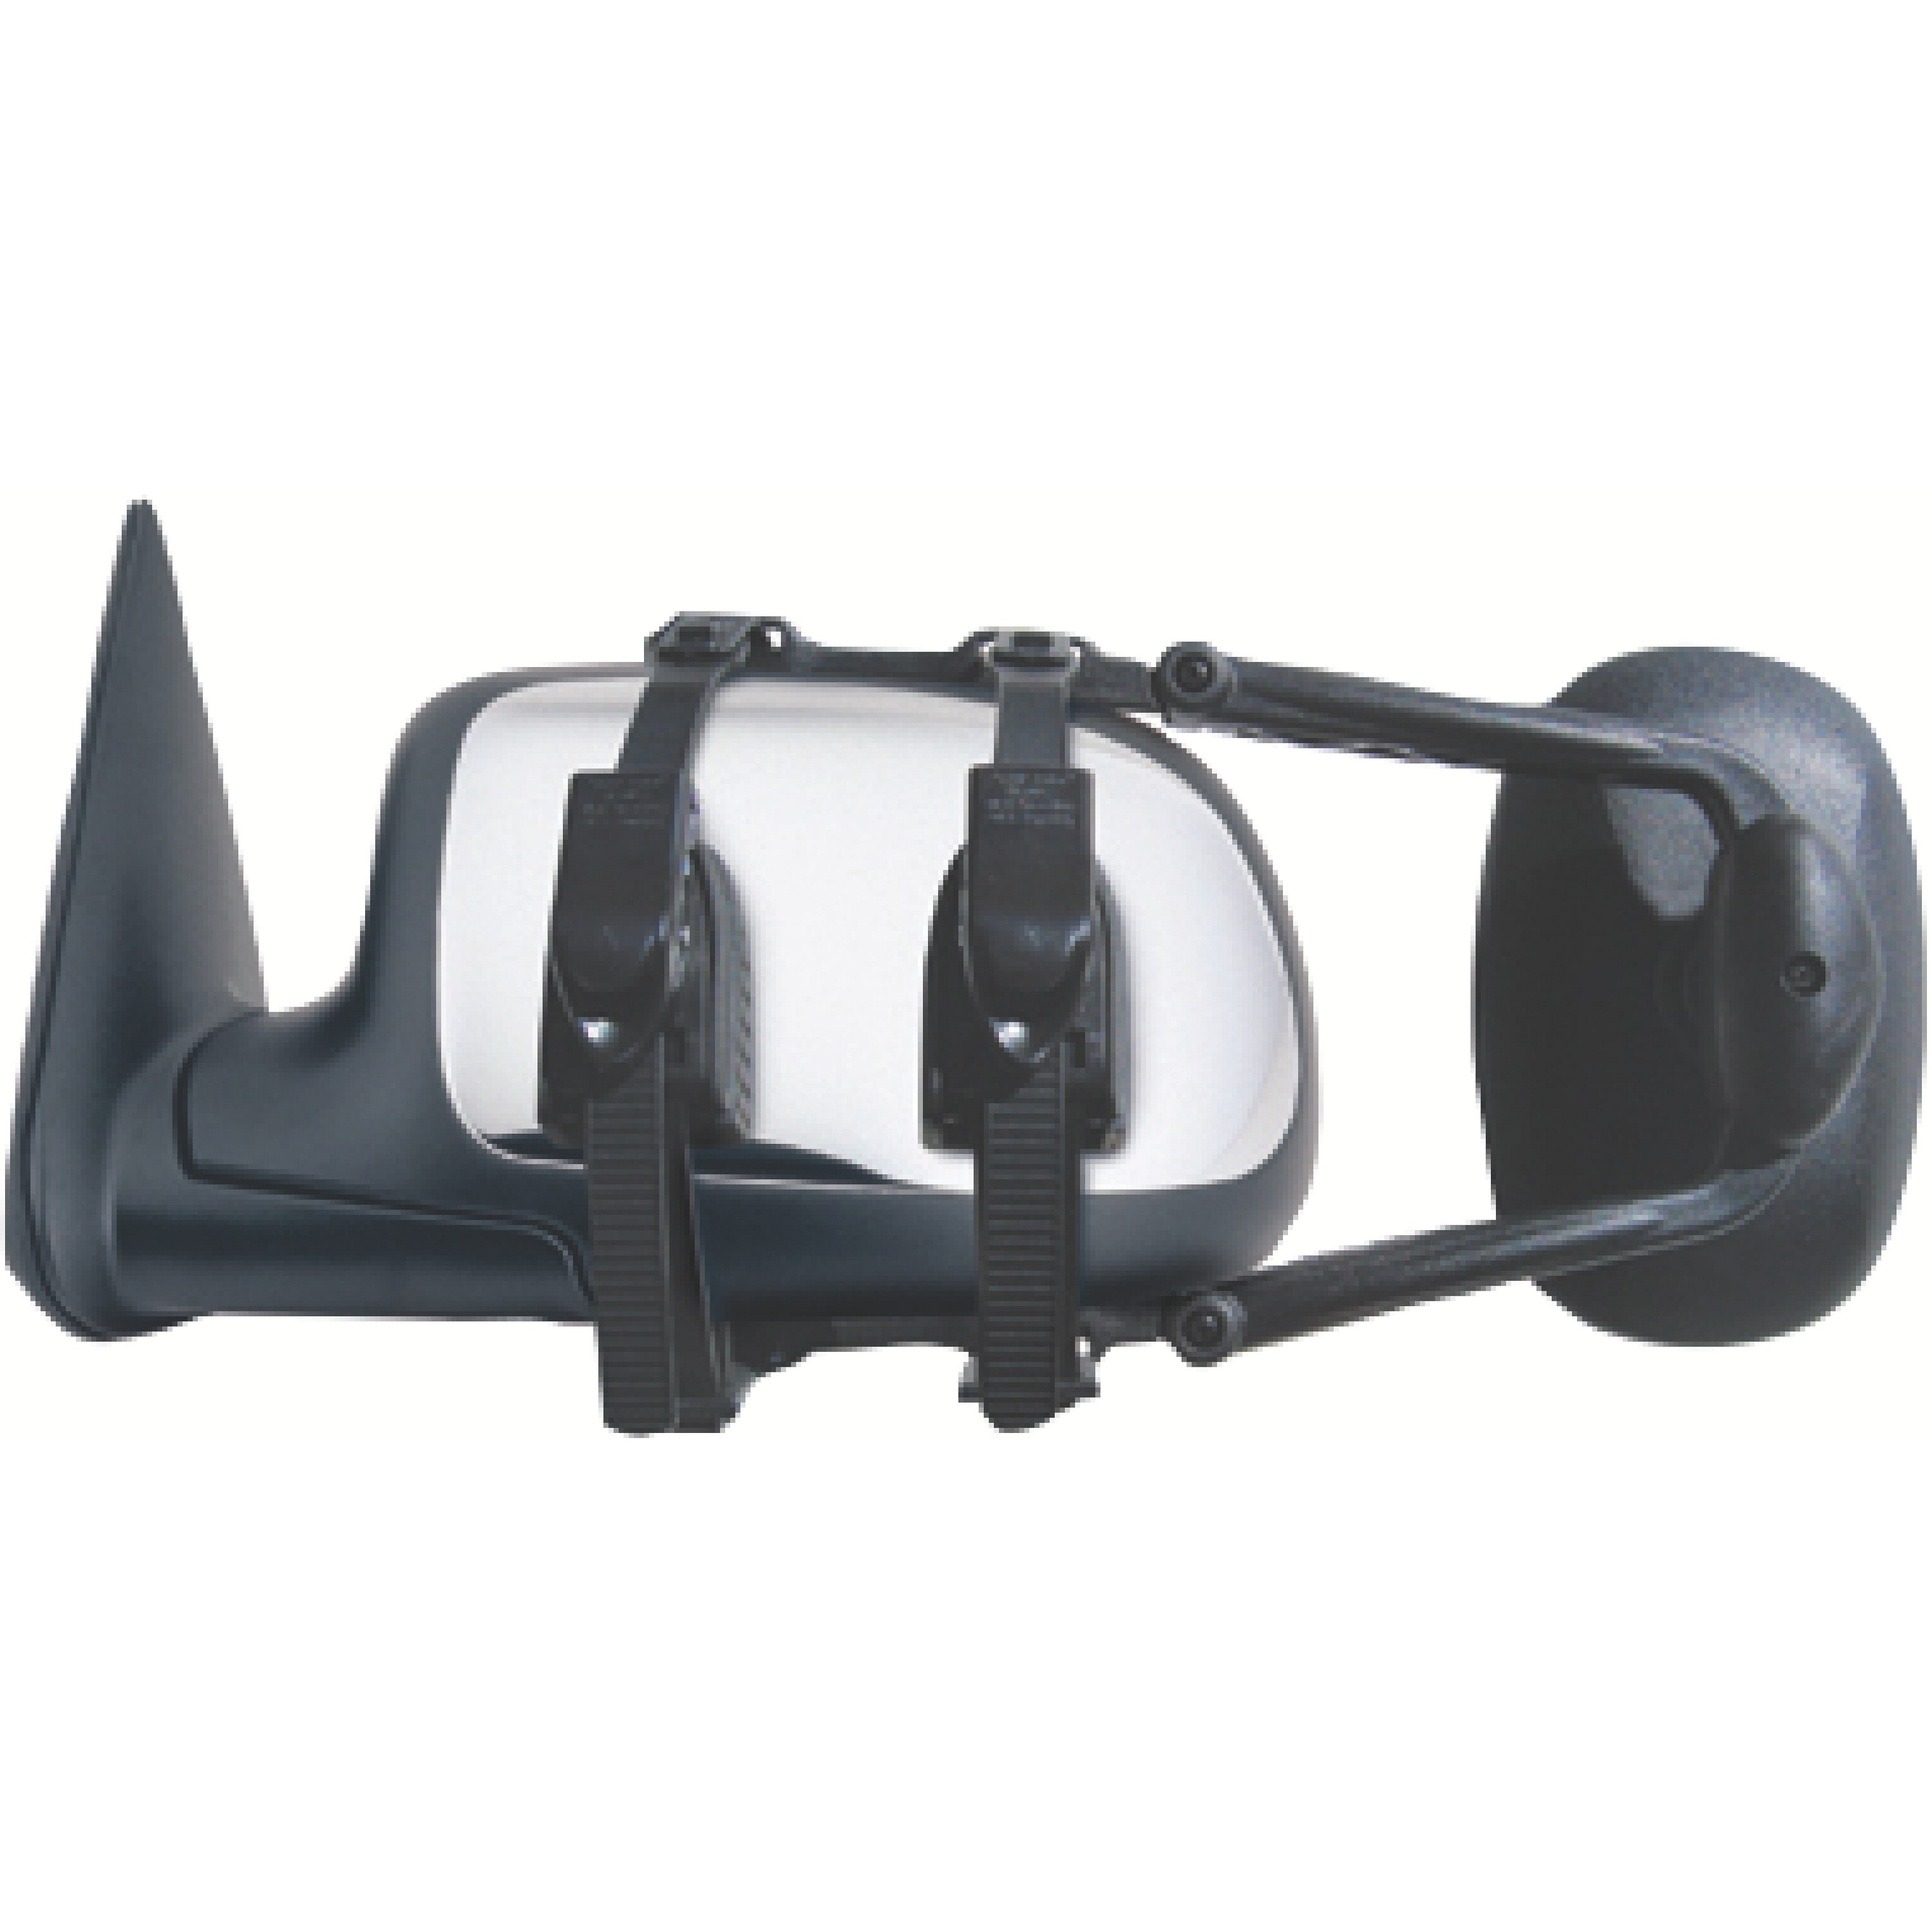 3891 - Fit System Extra Large Clip-On RV Universal Towing Mirror